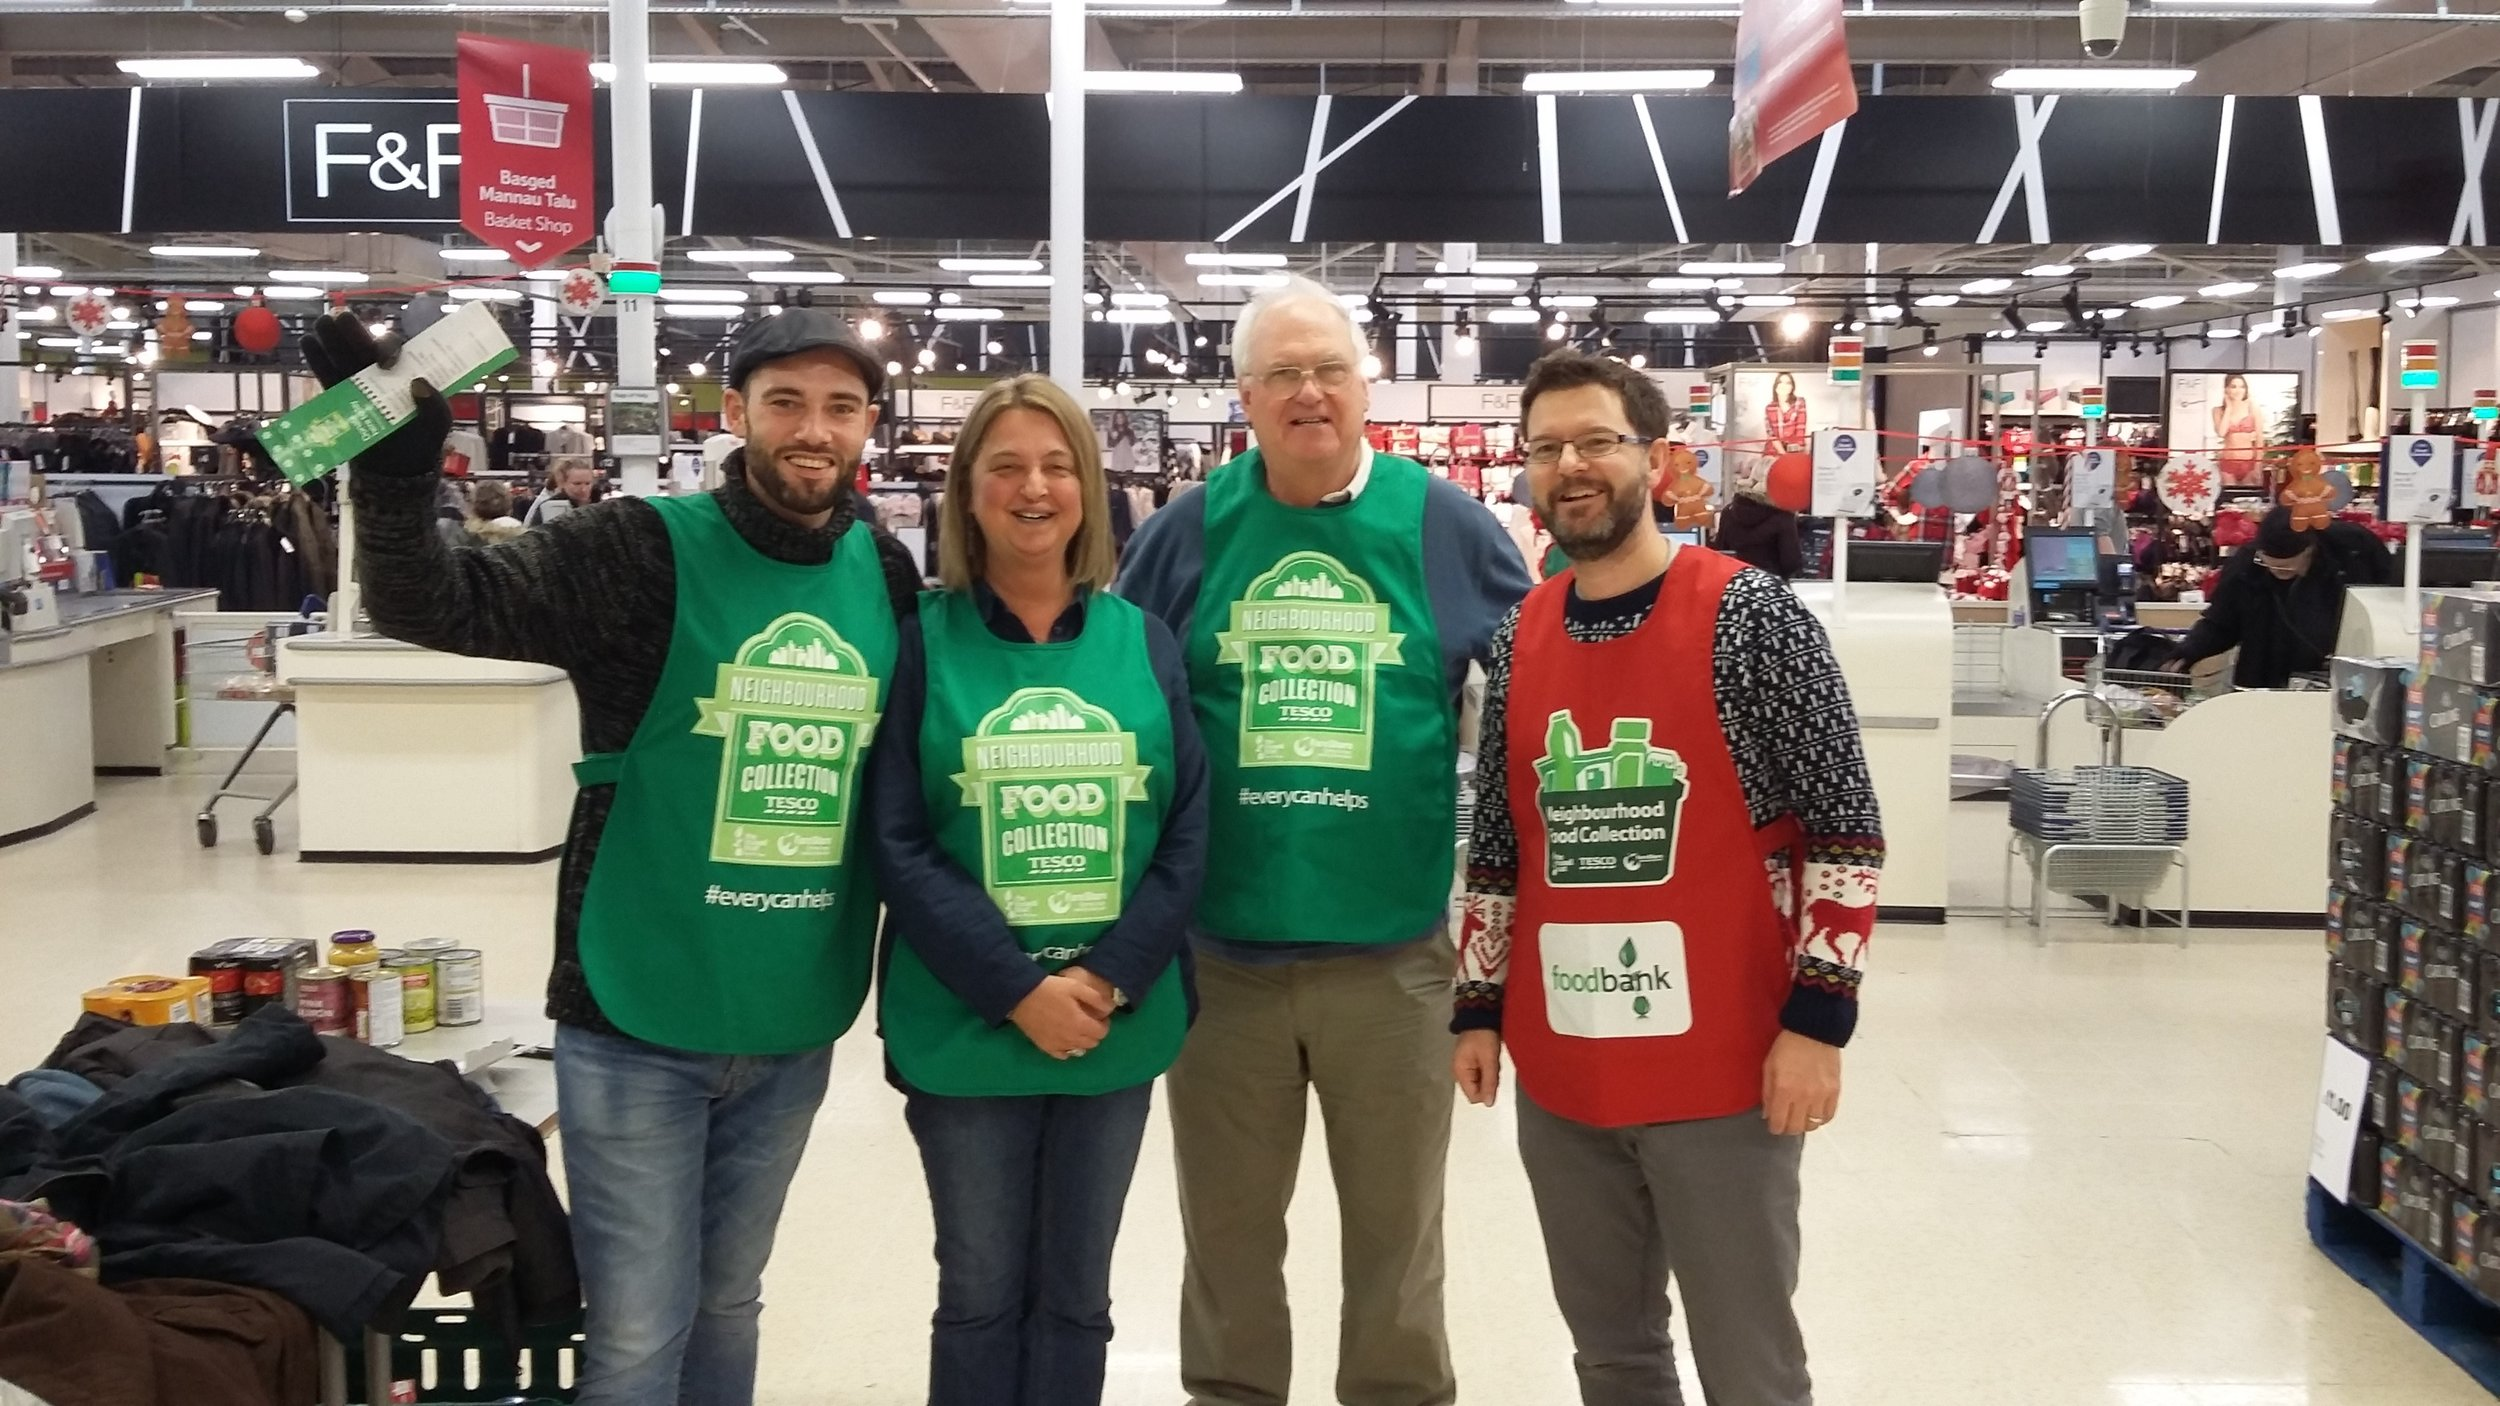 James Moss, Slate Legal's Managing Partner, pictured far right with other Newport Foodbank volunteers.